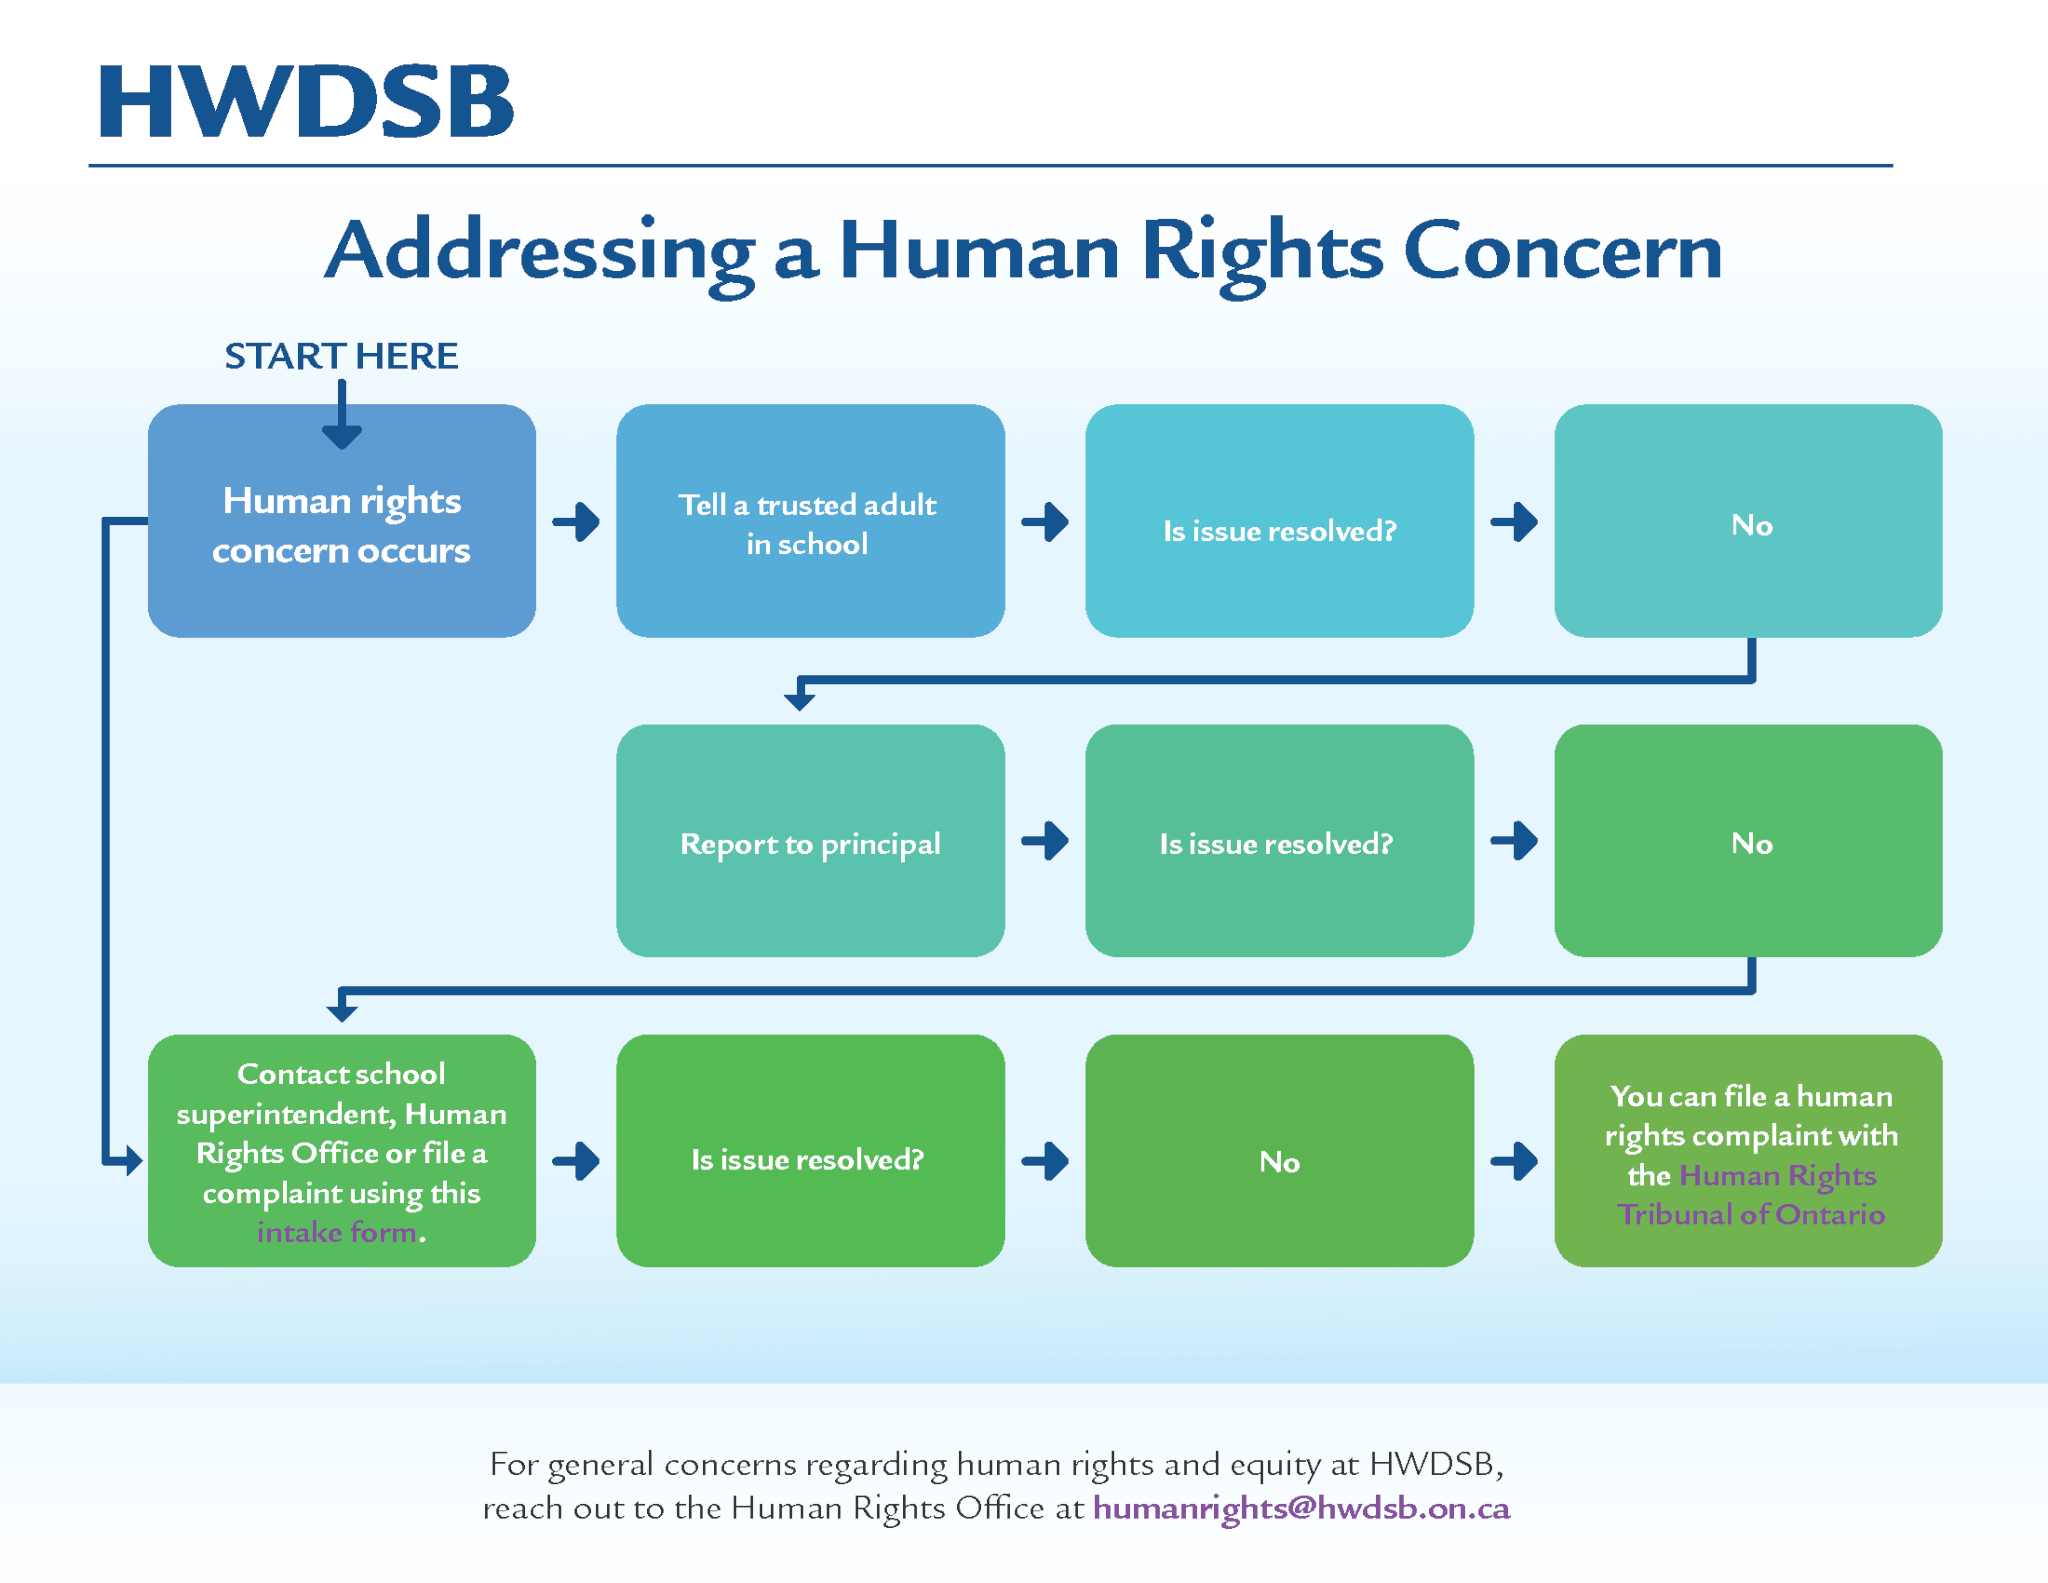 Addressing a Human Rights Concern Flow Chart